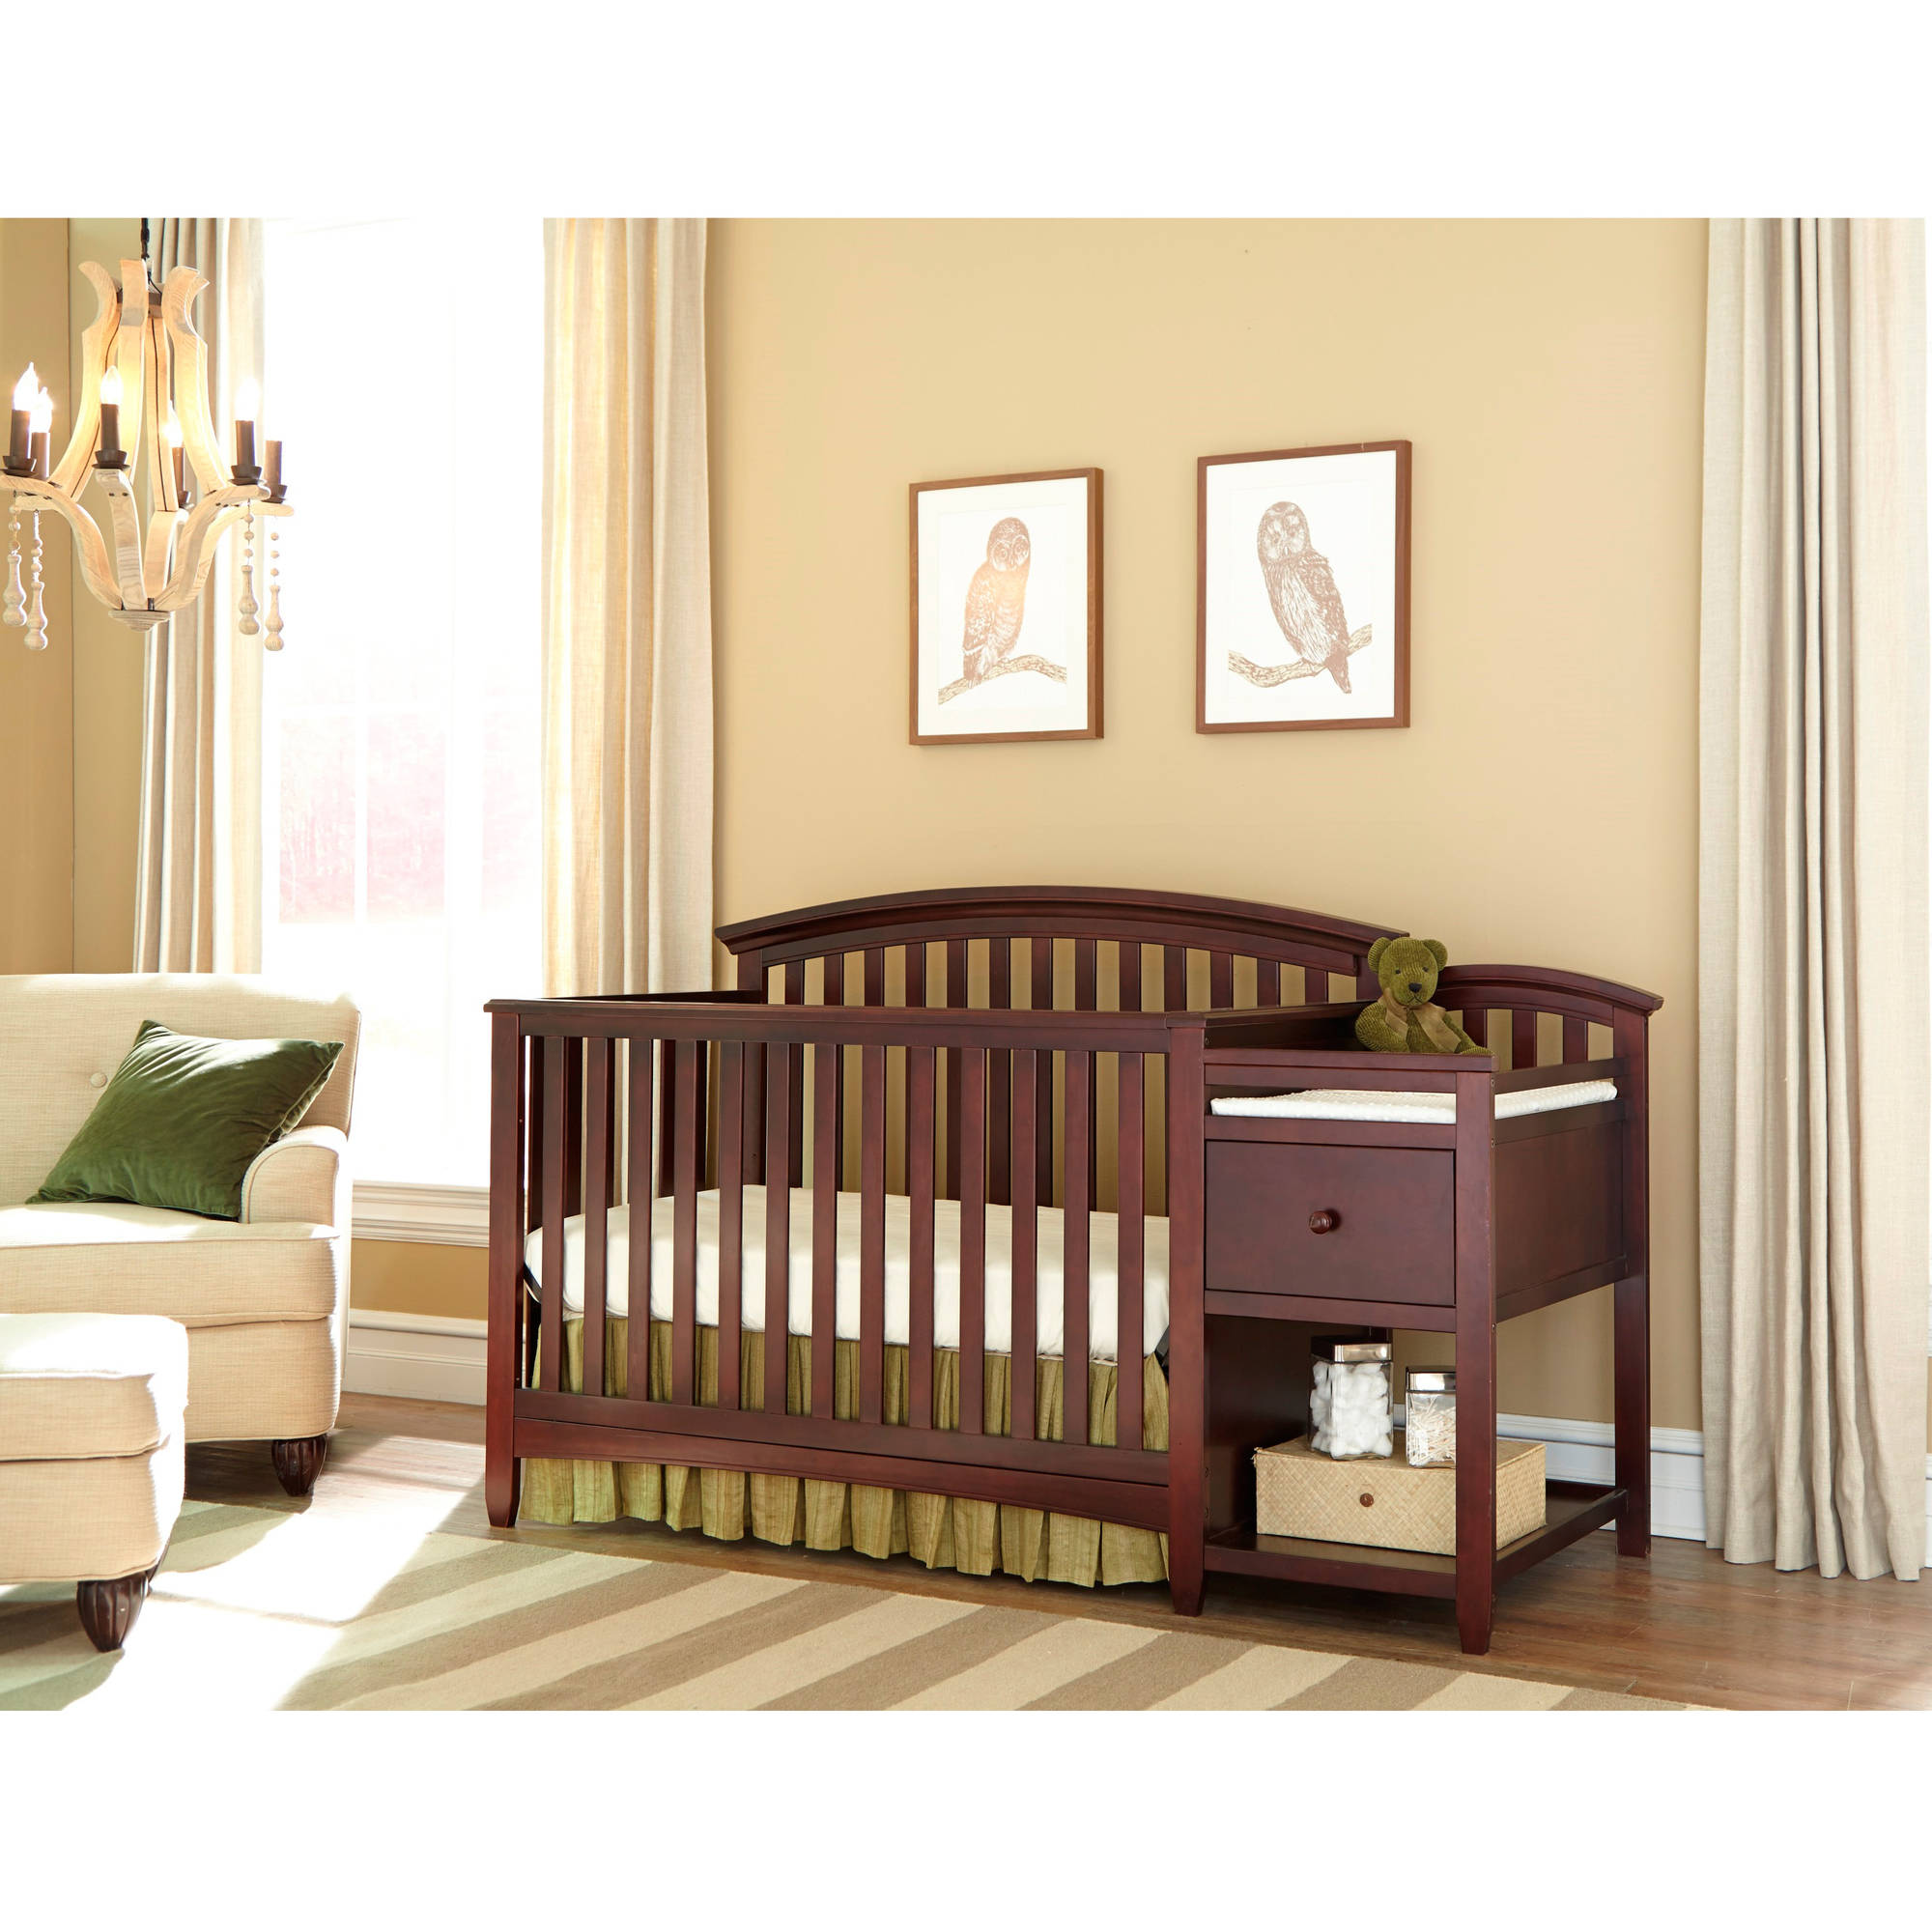 All In One Crib Crib Changer Combos Walmartcom